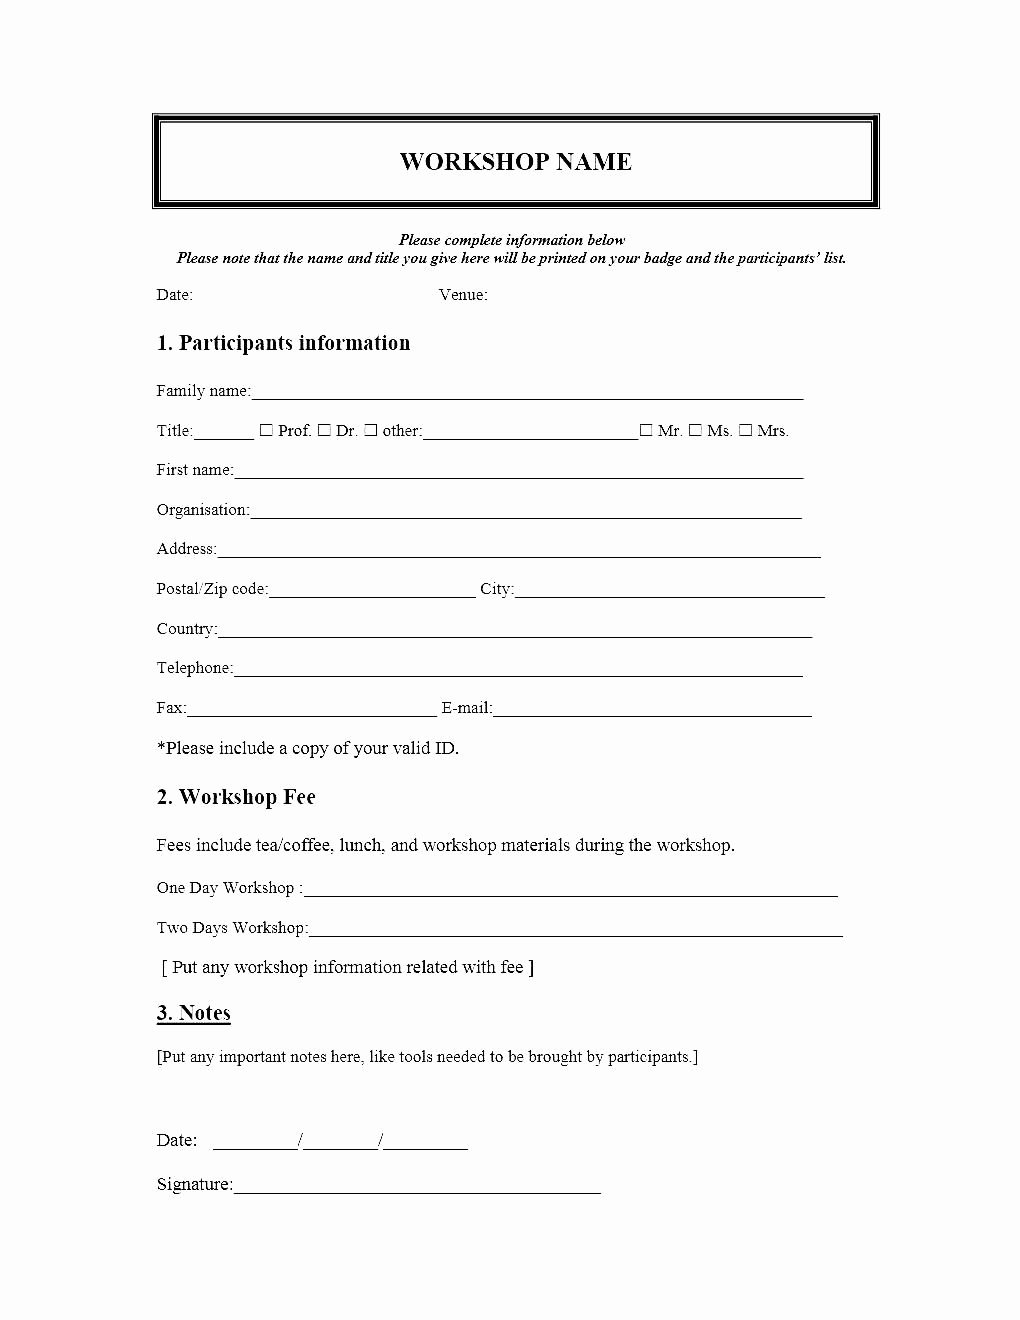 Medical form Templates Microsoft Word Lovely event Registration form Template Microsoft Word